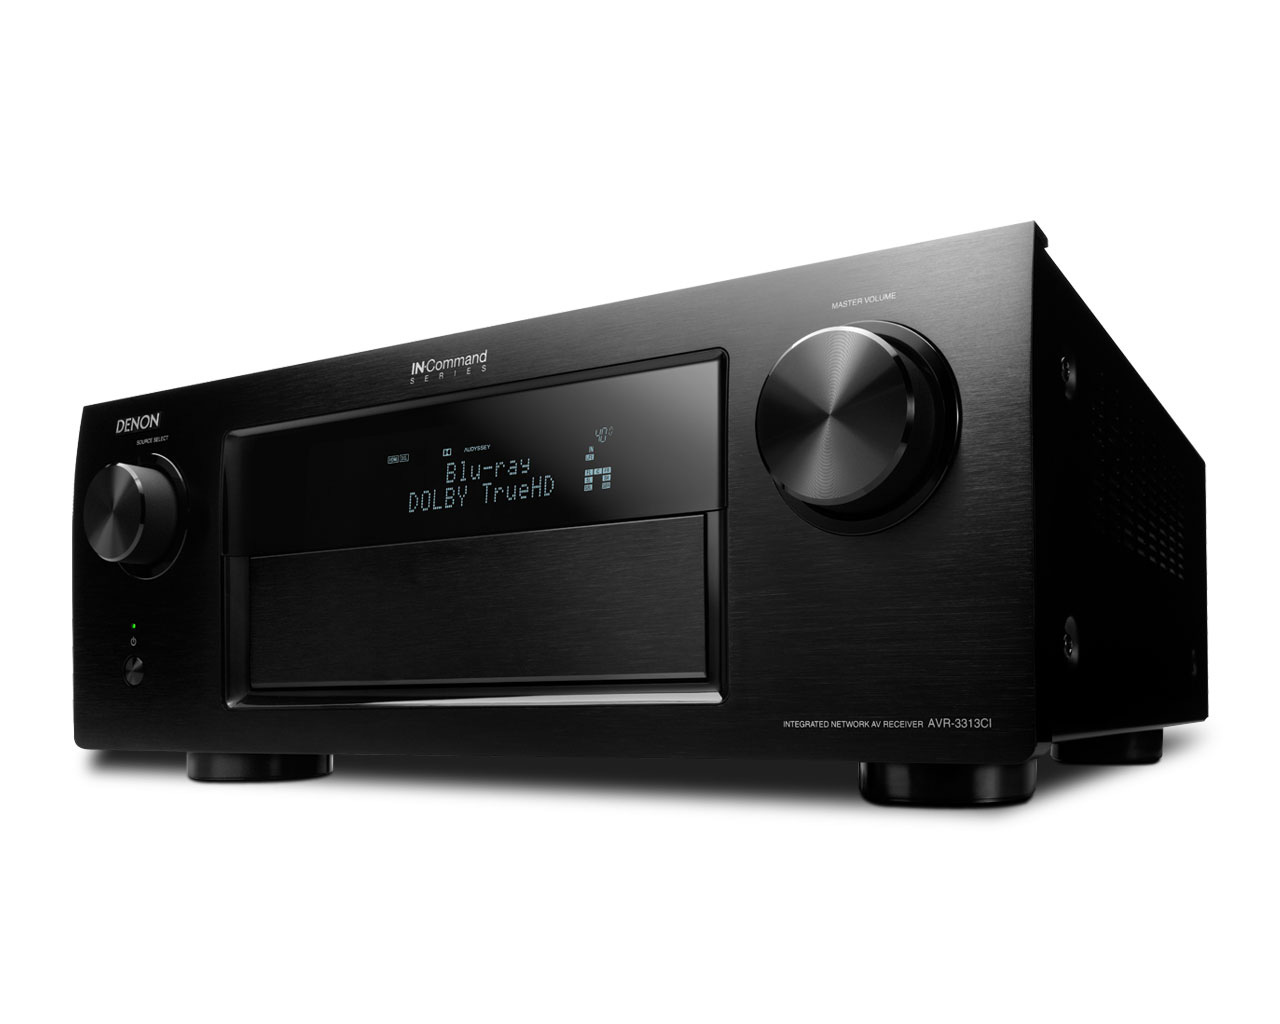 Denon Professional Grade Audio Video Recording The Preamplifier With Dual Main